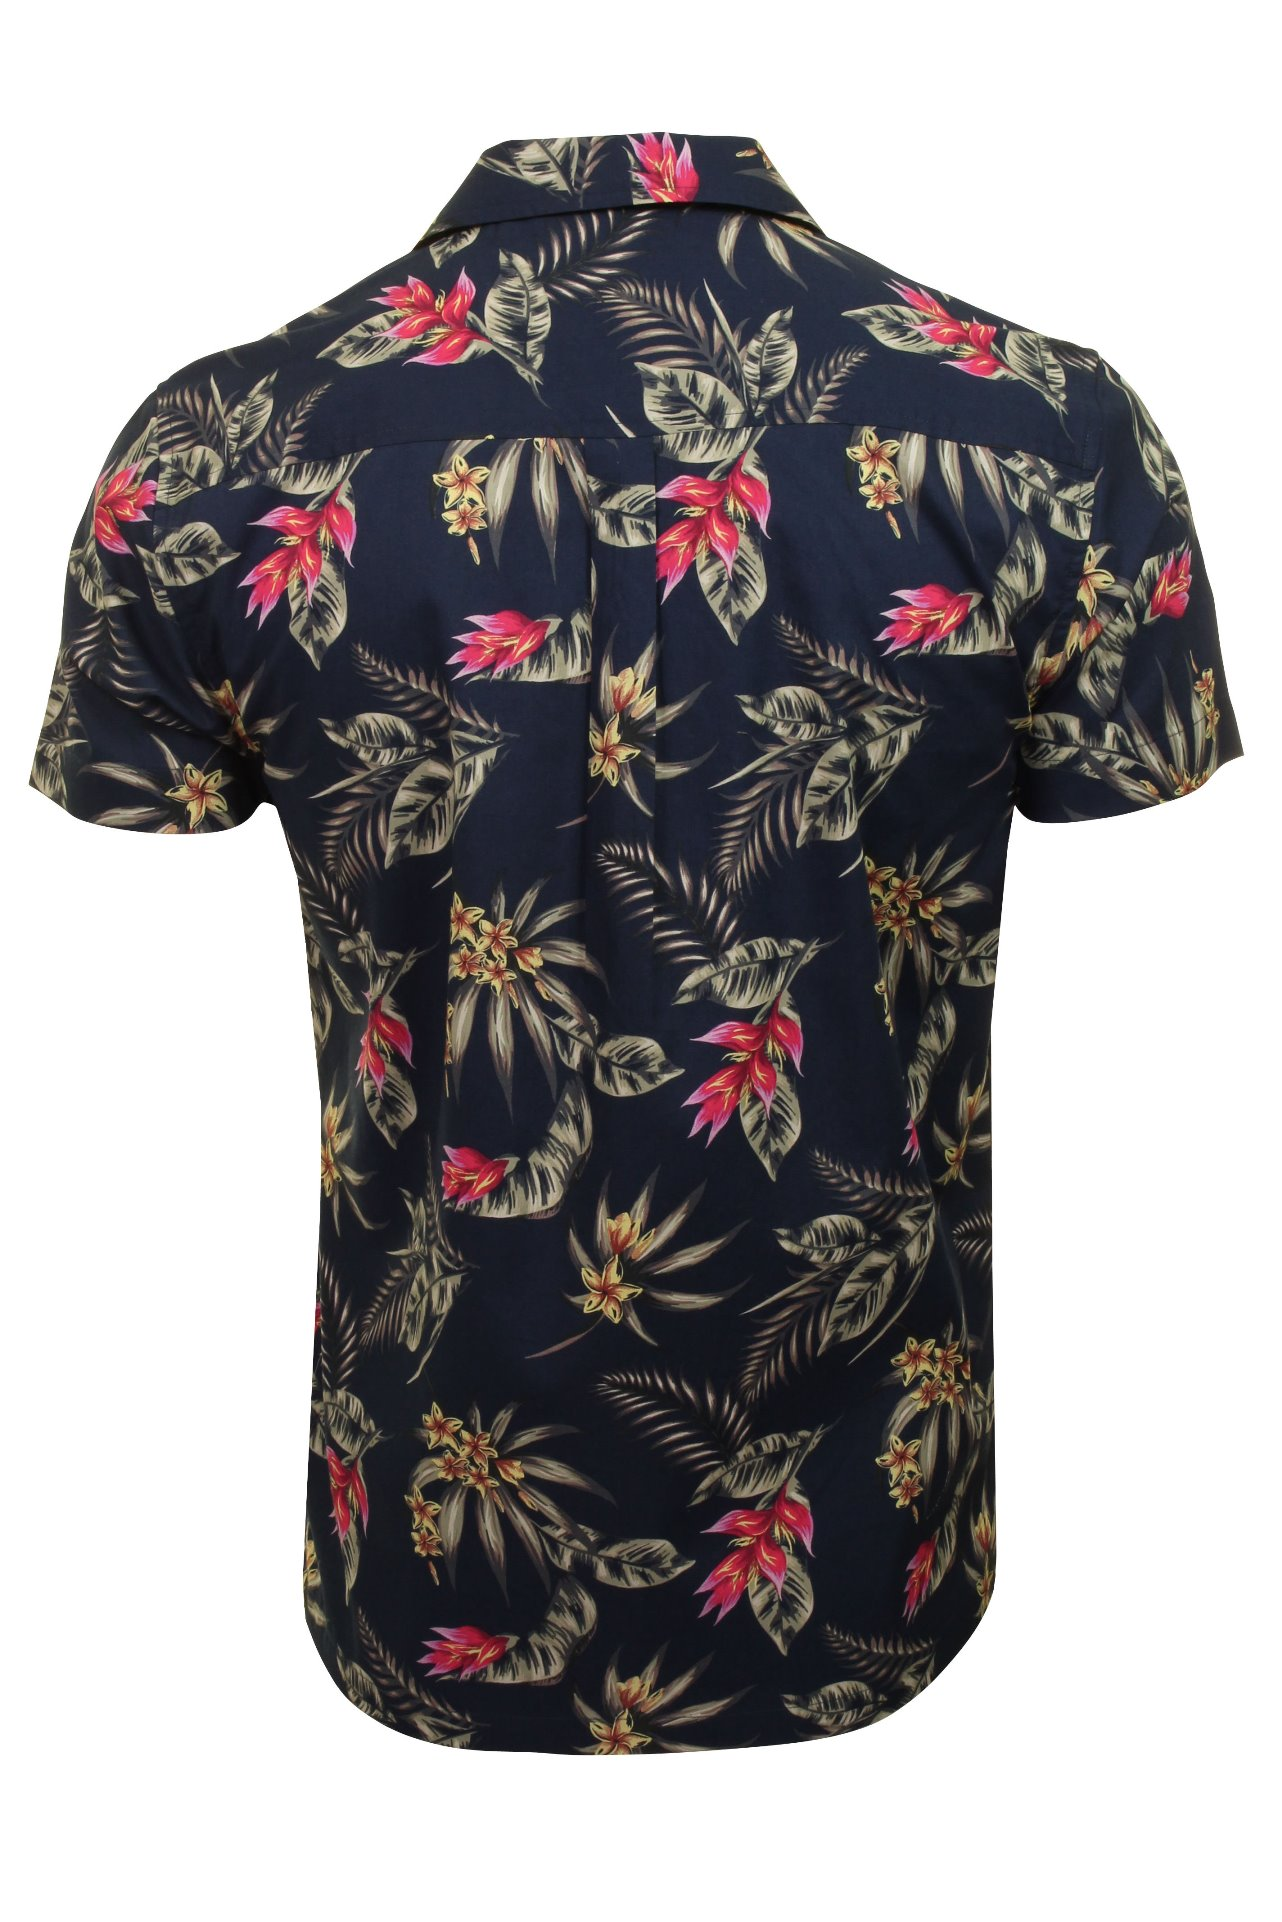 Hommes-Xact-Floral-Chemise-Hawaienne-a-Manches-Courtes miniature 5